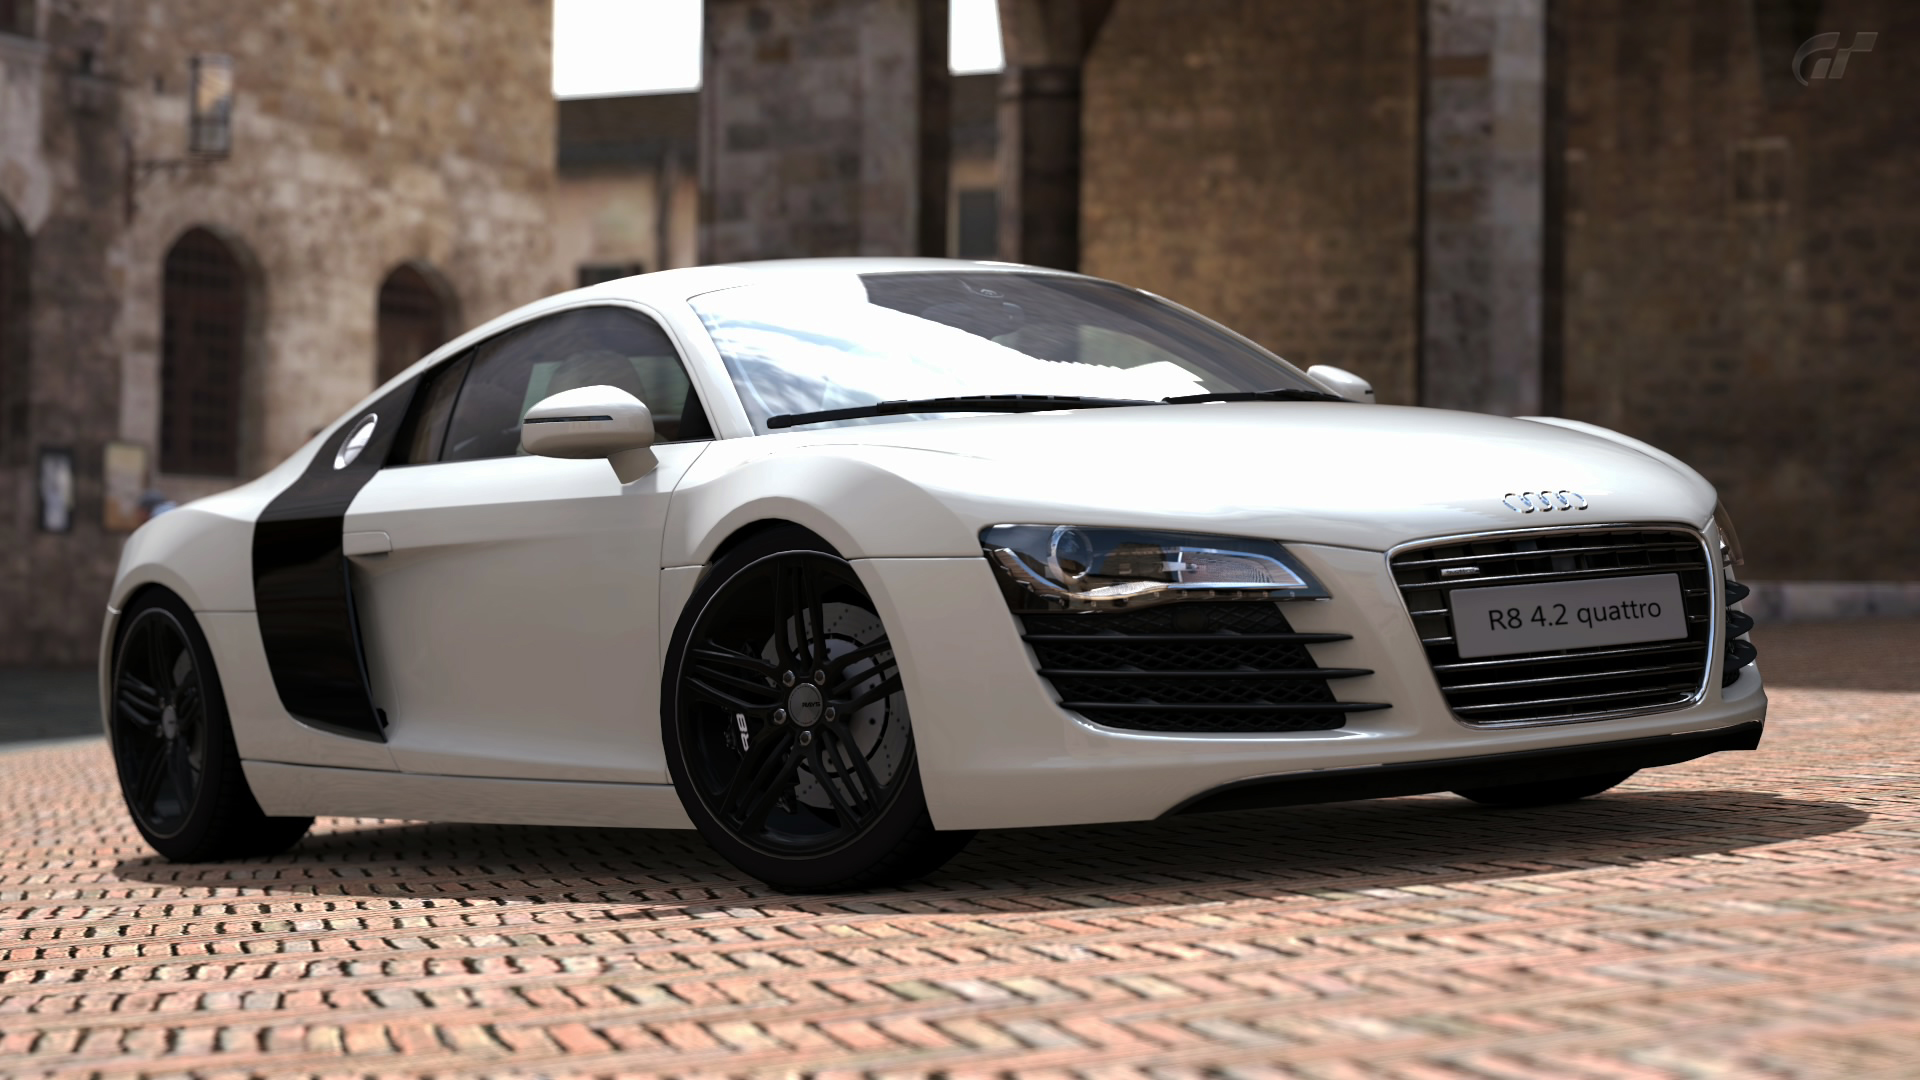 Audi R8 favourites by Deviantuse on DeviantArt